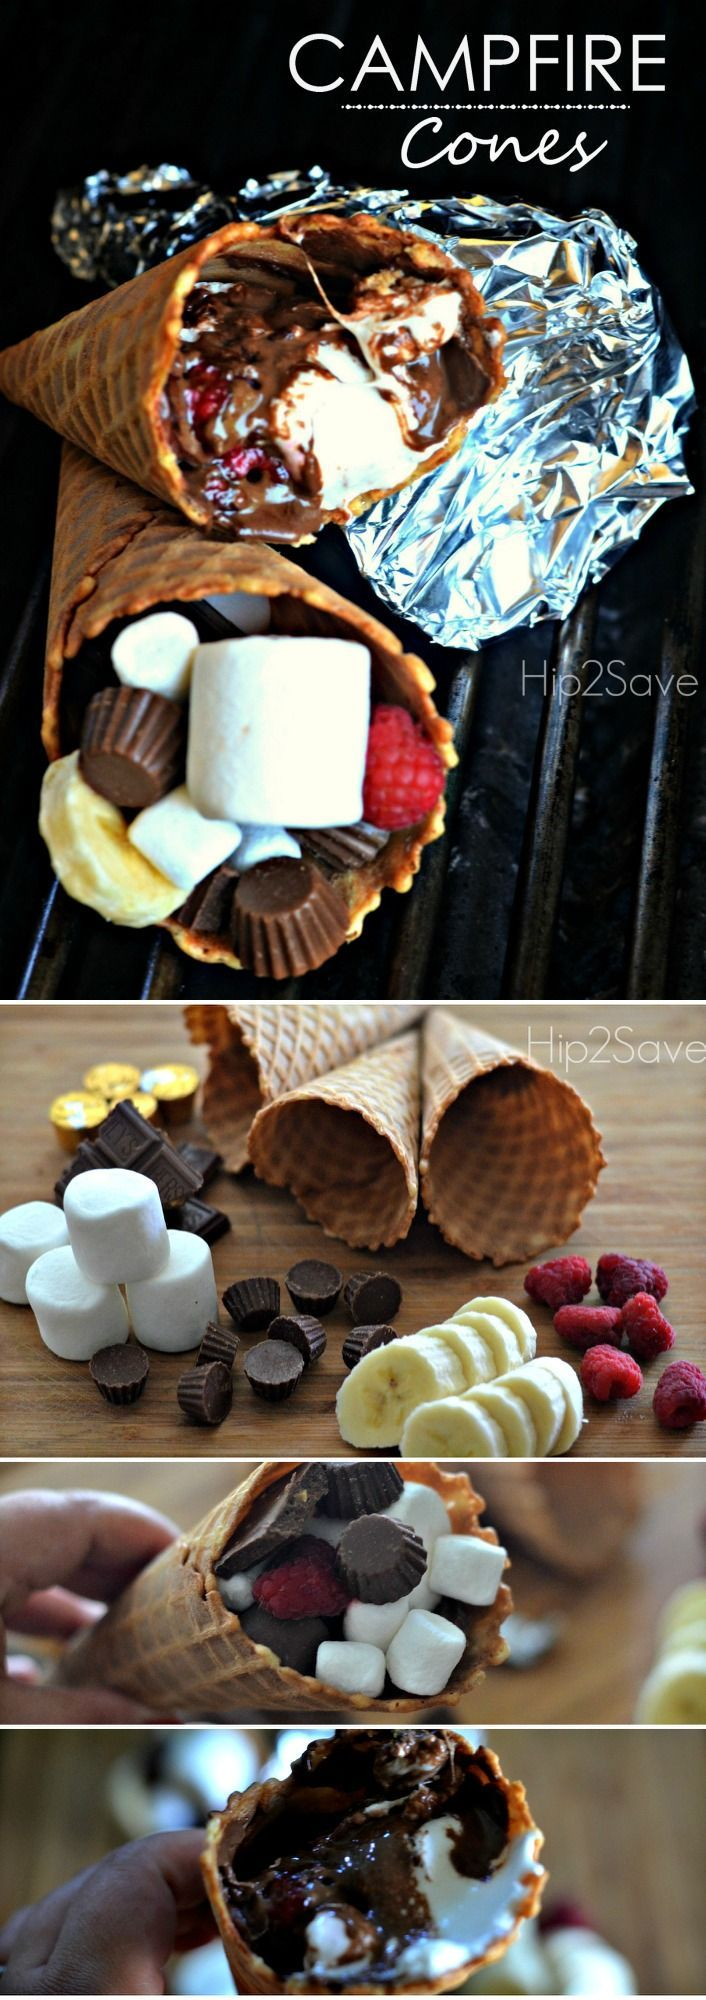 Campfire Cones filled with marshmallows, chocholate, bananas and so much more…